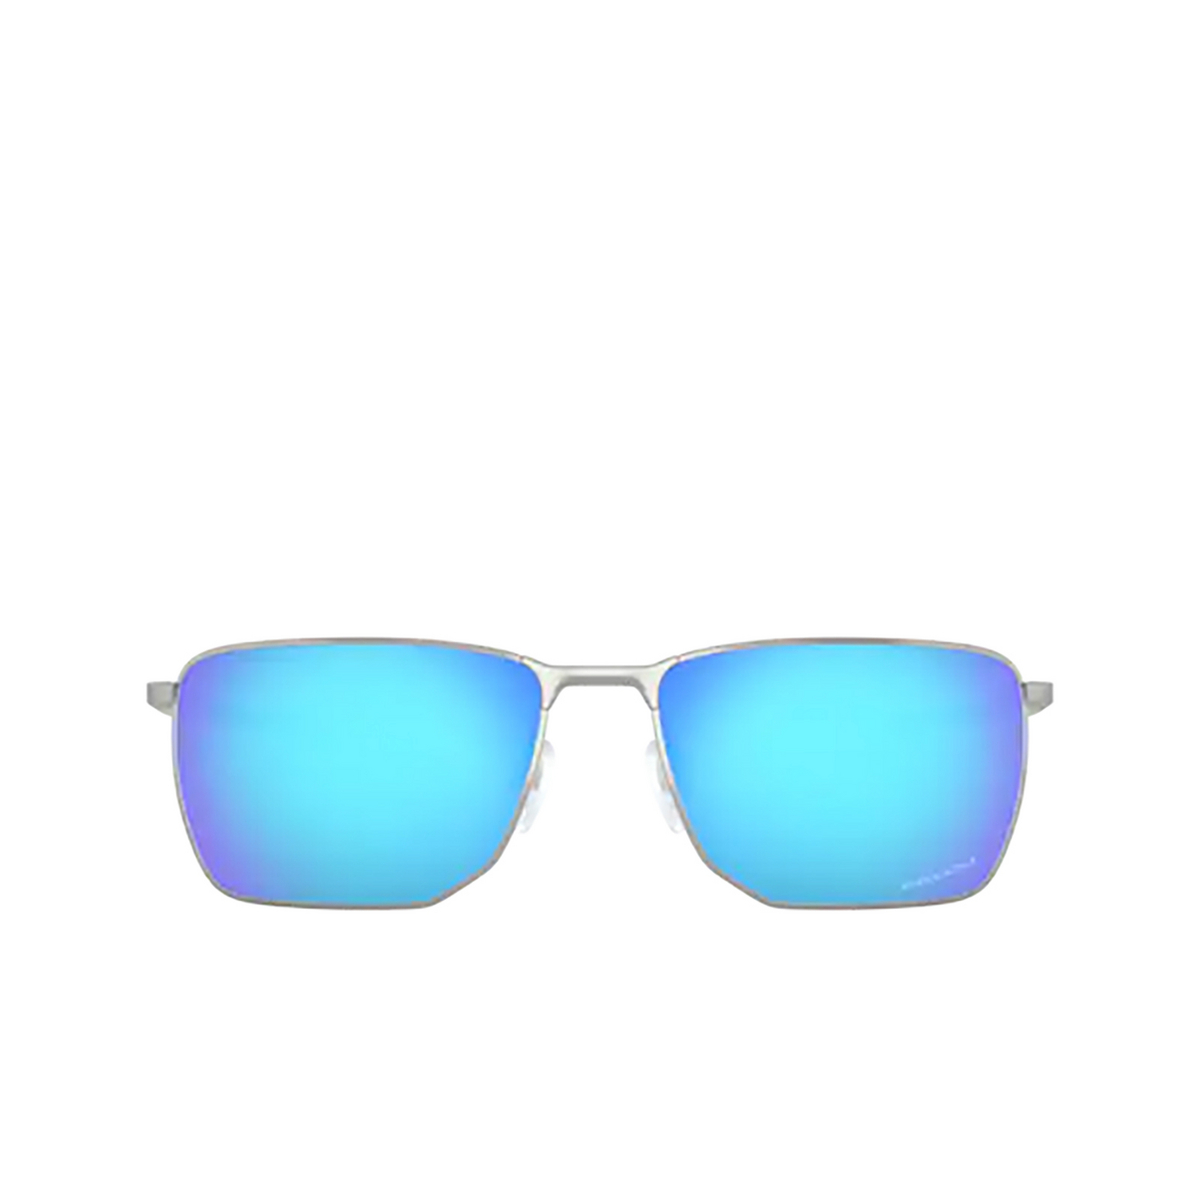 Oakley® Rectangle Sunglasses: Ejector OO4142 color Satin Chrome 414204 - front view.